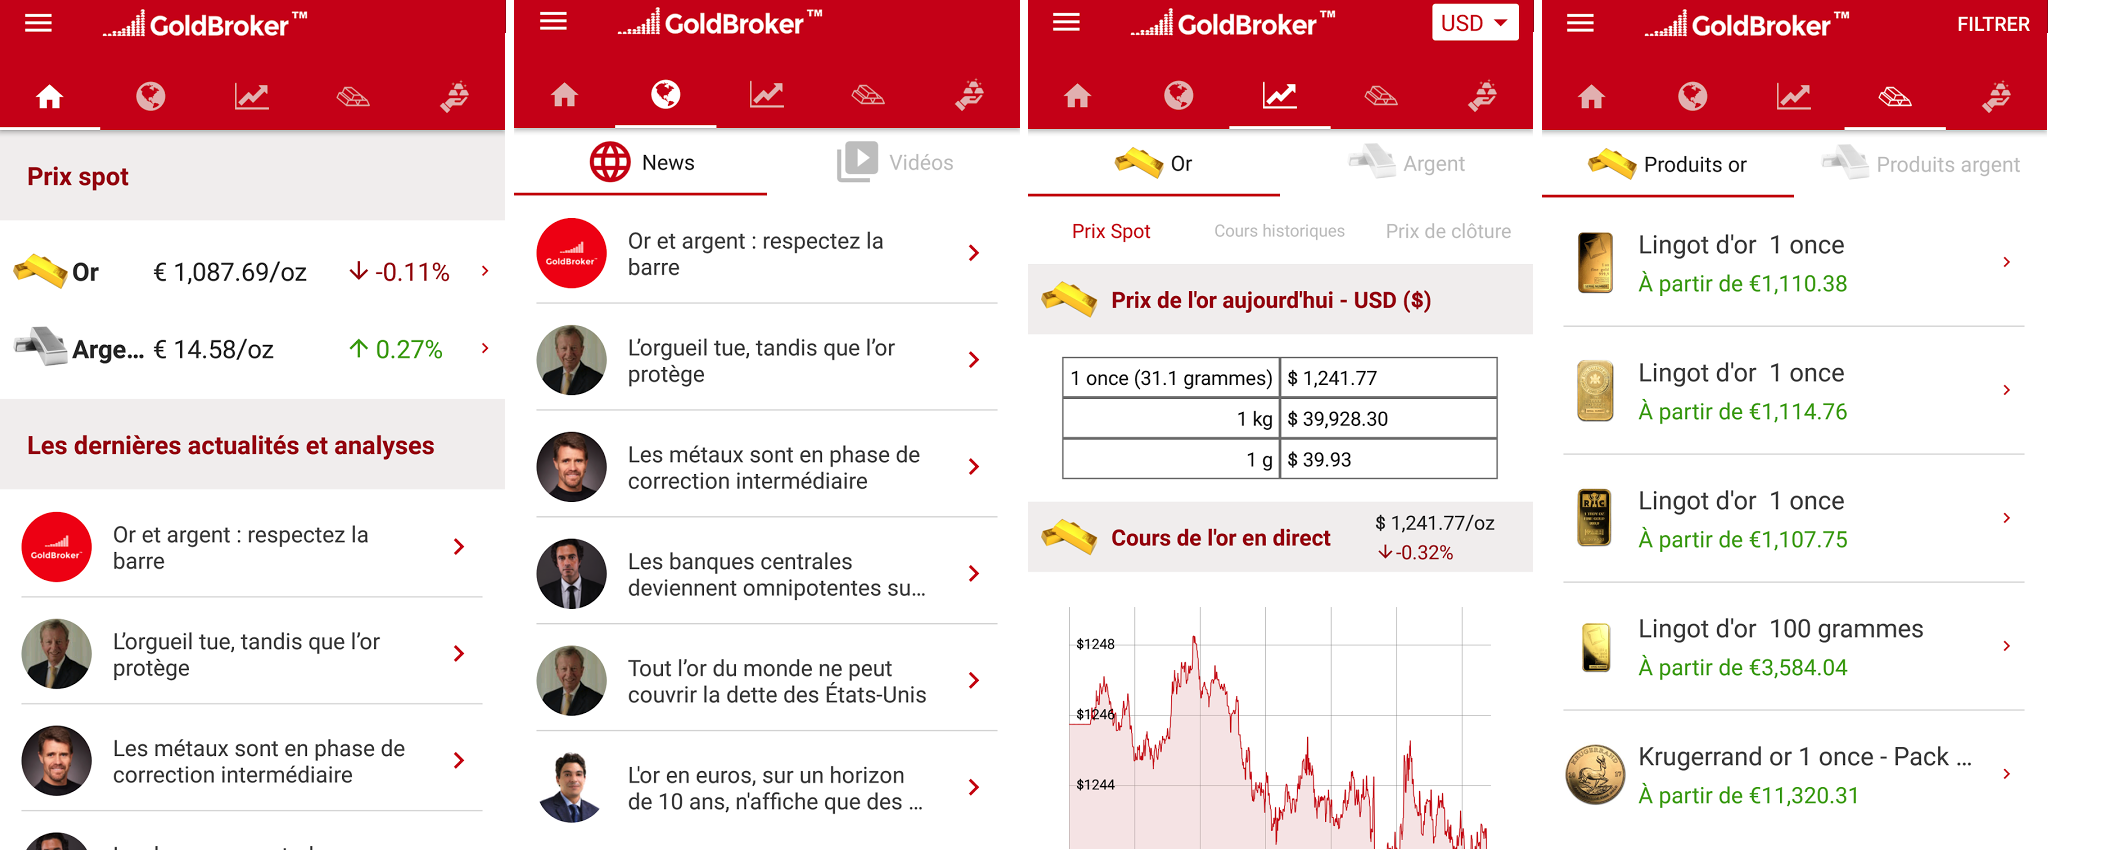 Appli Android Goldbroker